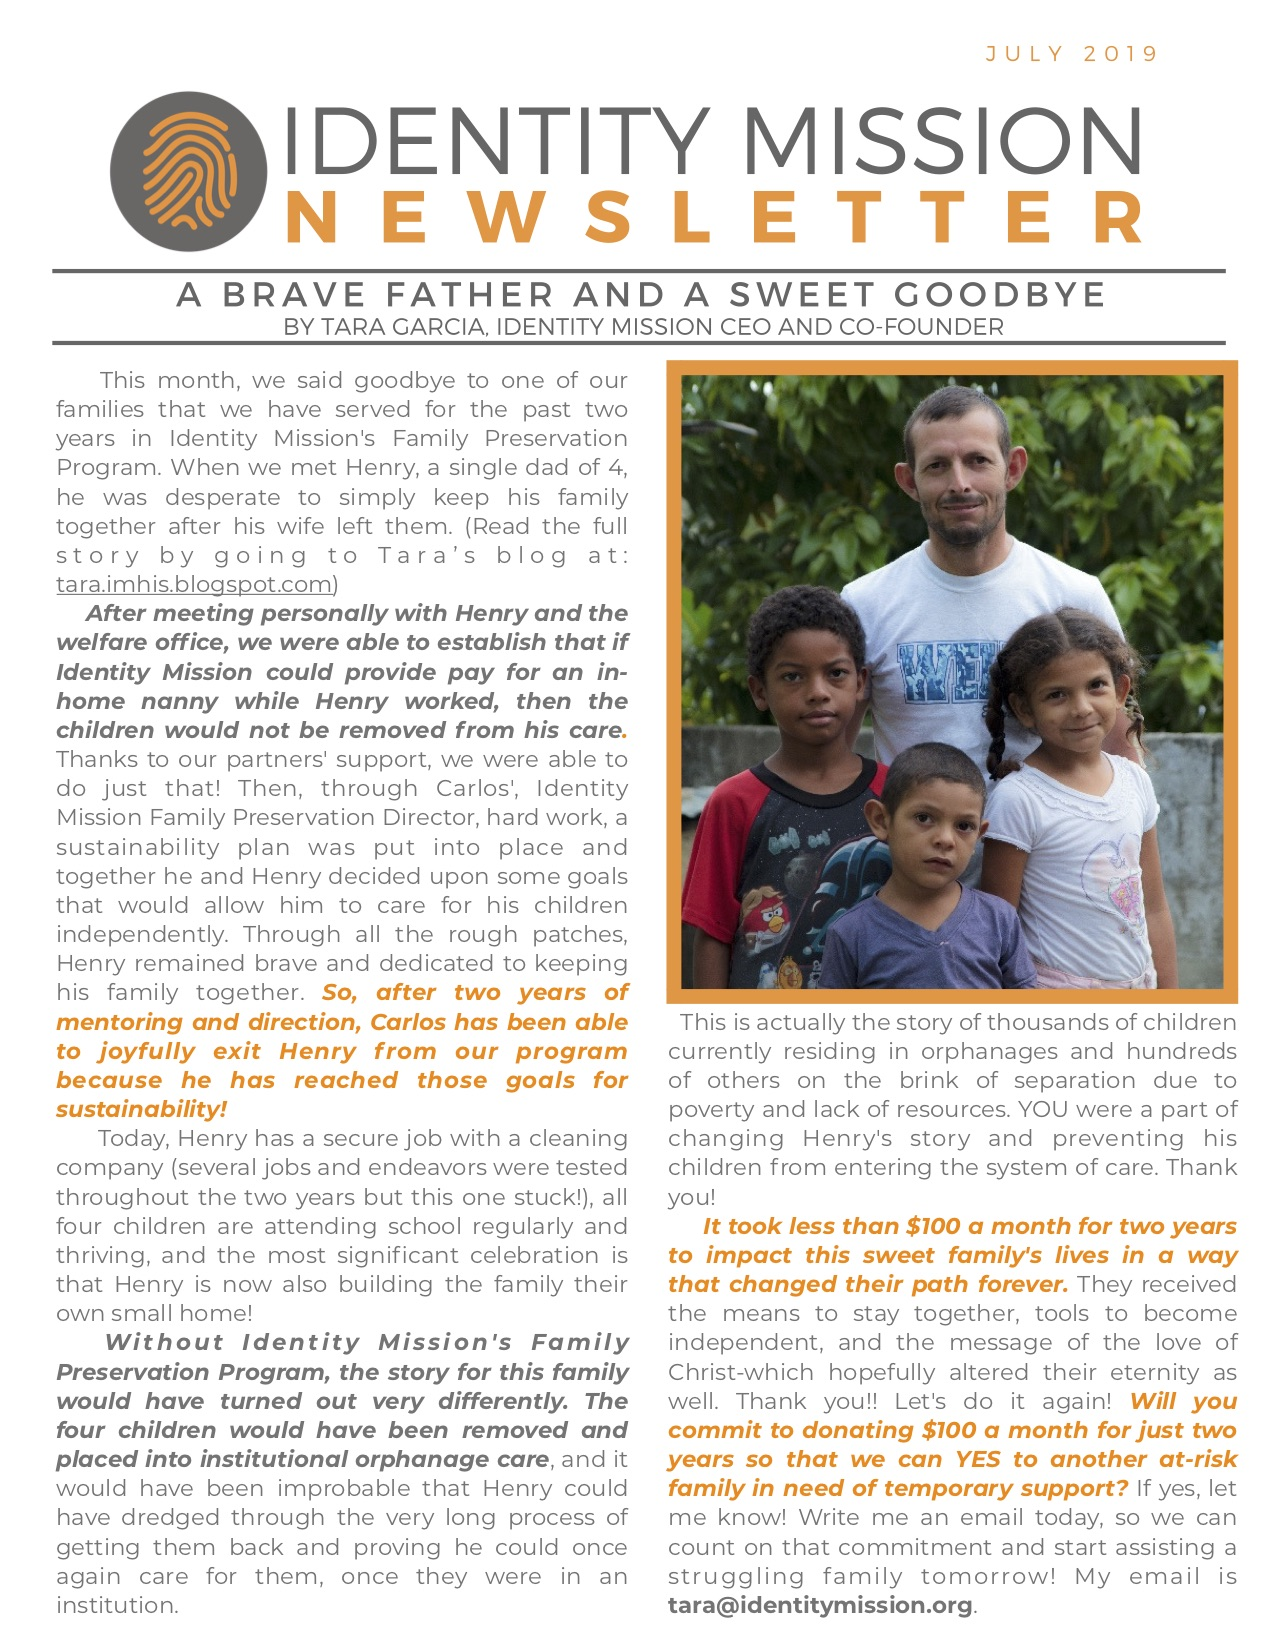 Identity Mission Newsletter July 2019.jpg